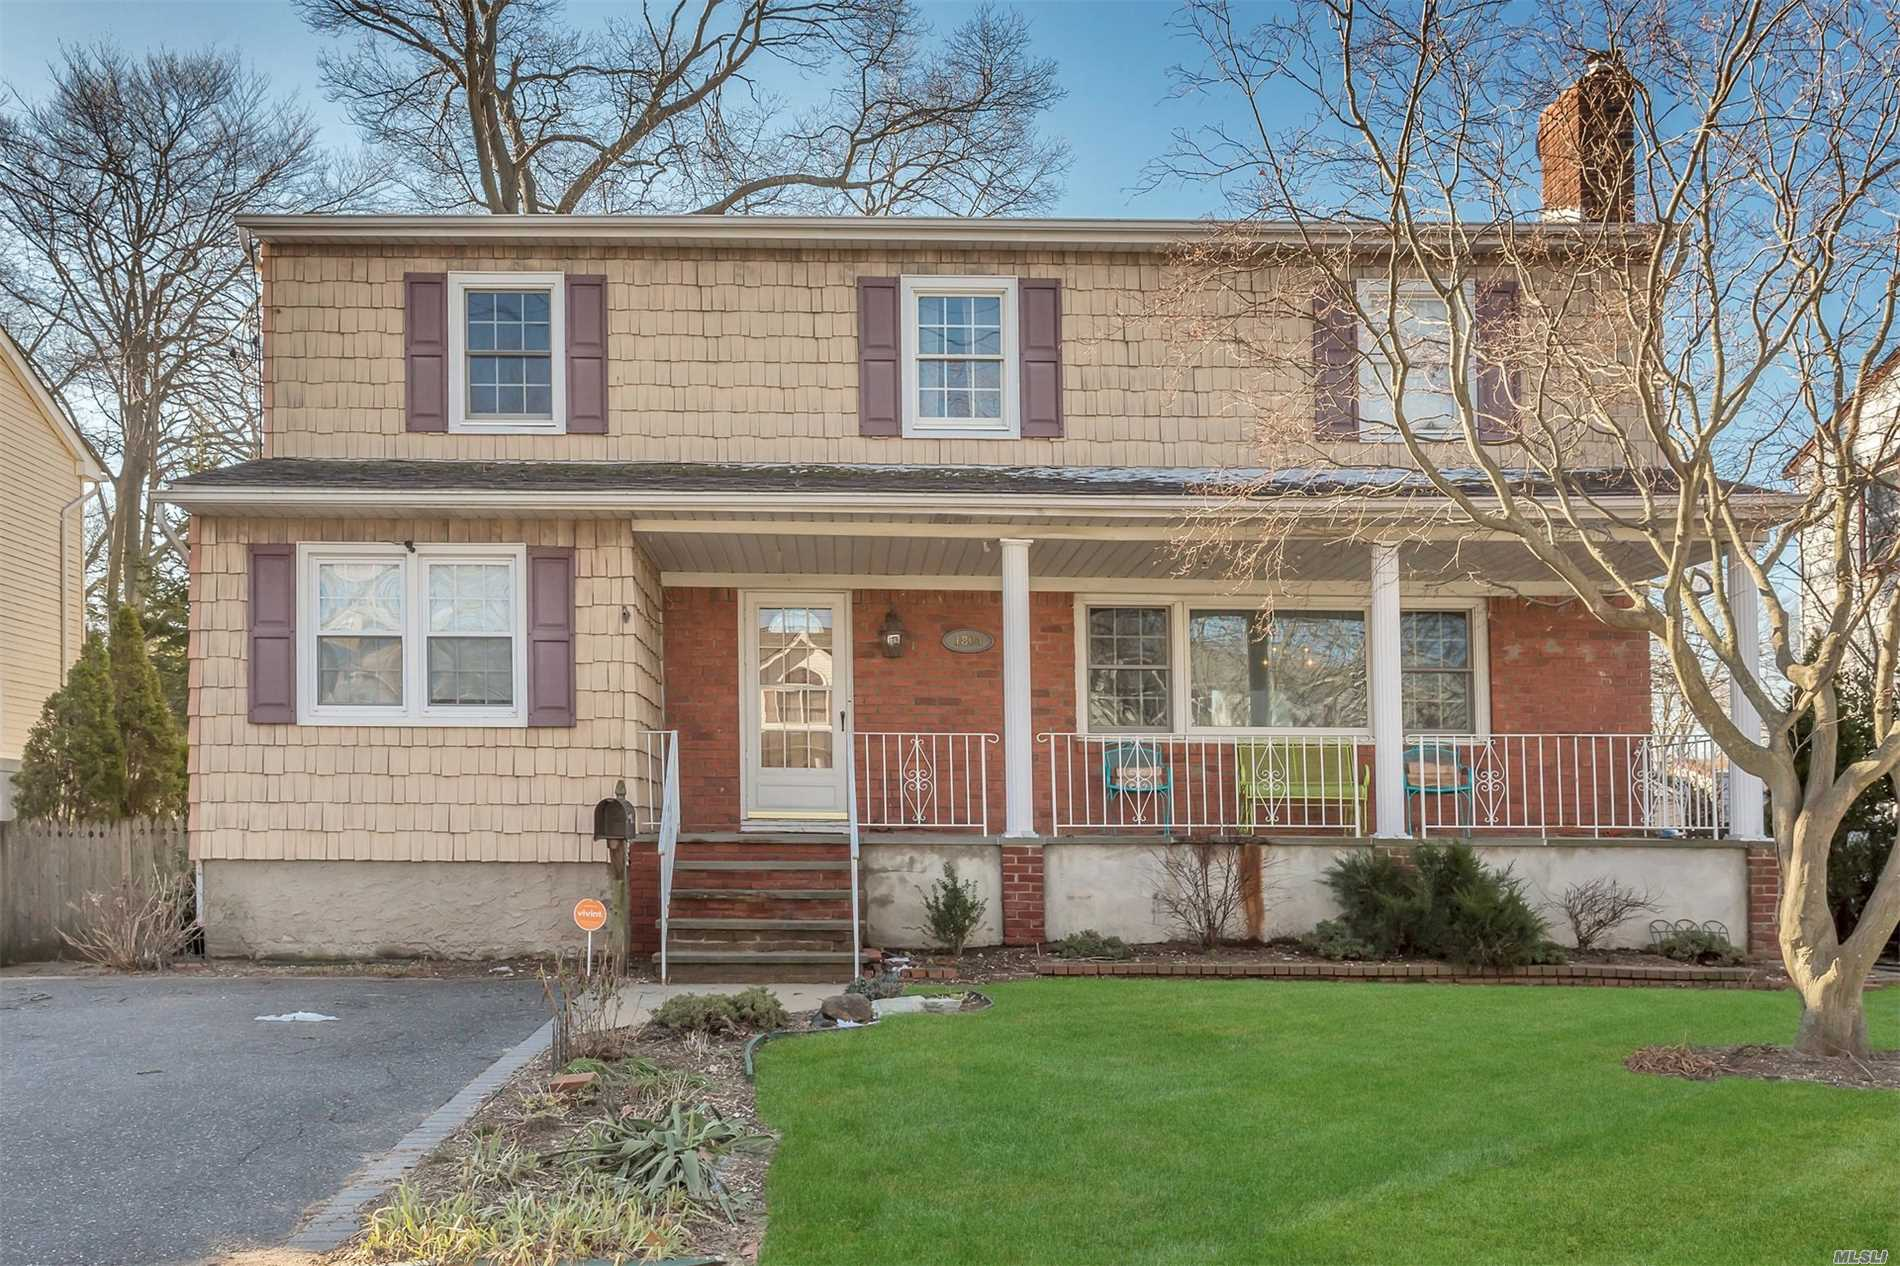 Move In Condition 6 Bdrm 2 1/2 Bath Updated Colonial. Living Room W/Wood Burning Fireplace, Large Eik, Fdr, Hardwood Floors, Cac, 3 Zone Heat, 200 Amp Electric. Possible Mother/Daughter W/Proper Permits. Won't Last!